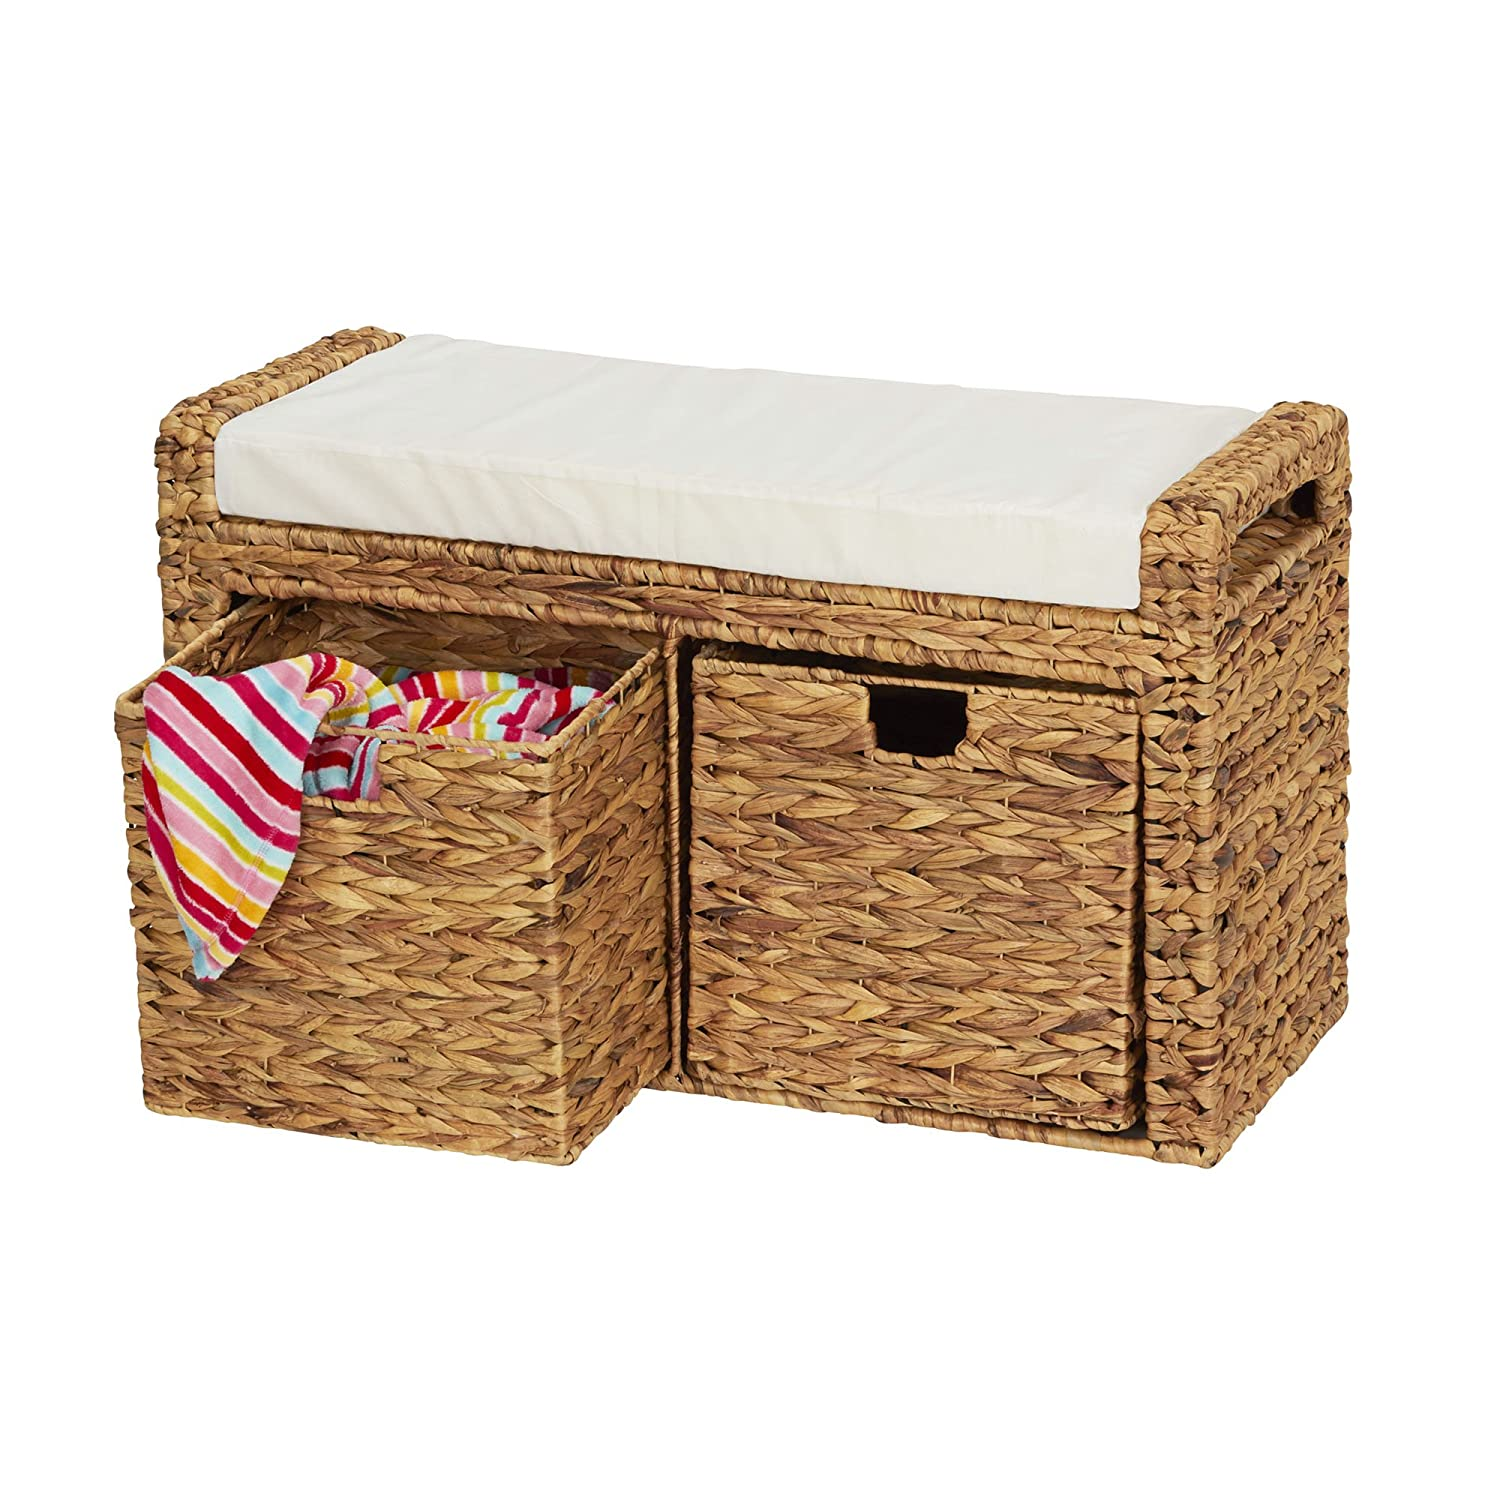 Natural Wicker Cushioned Bench with Storage Cubes